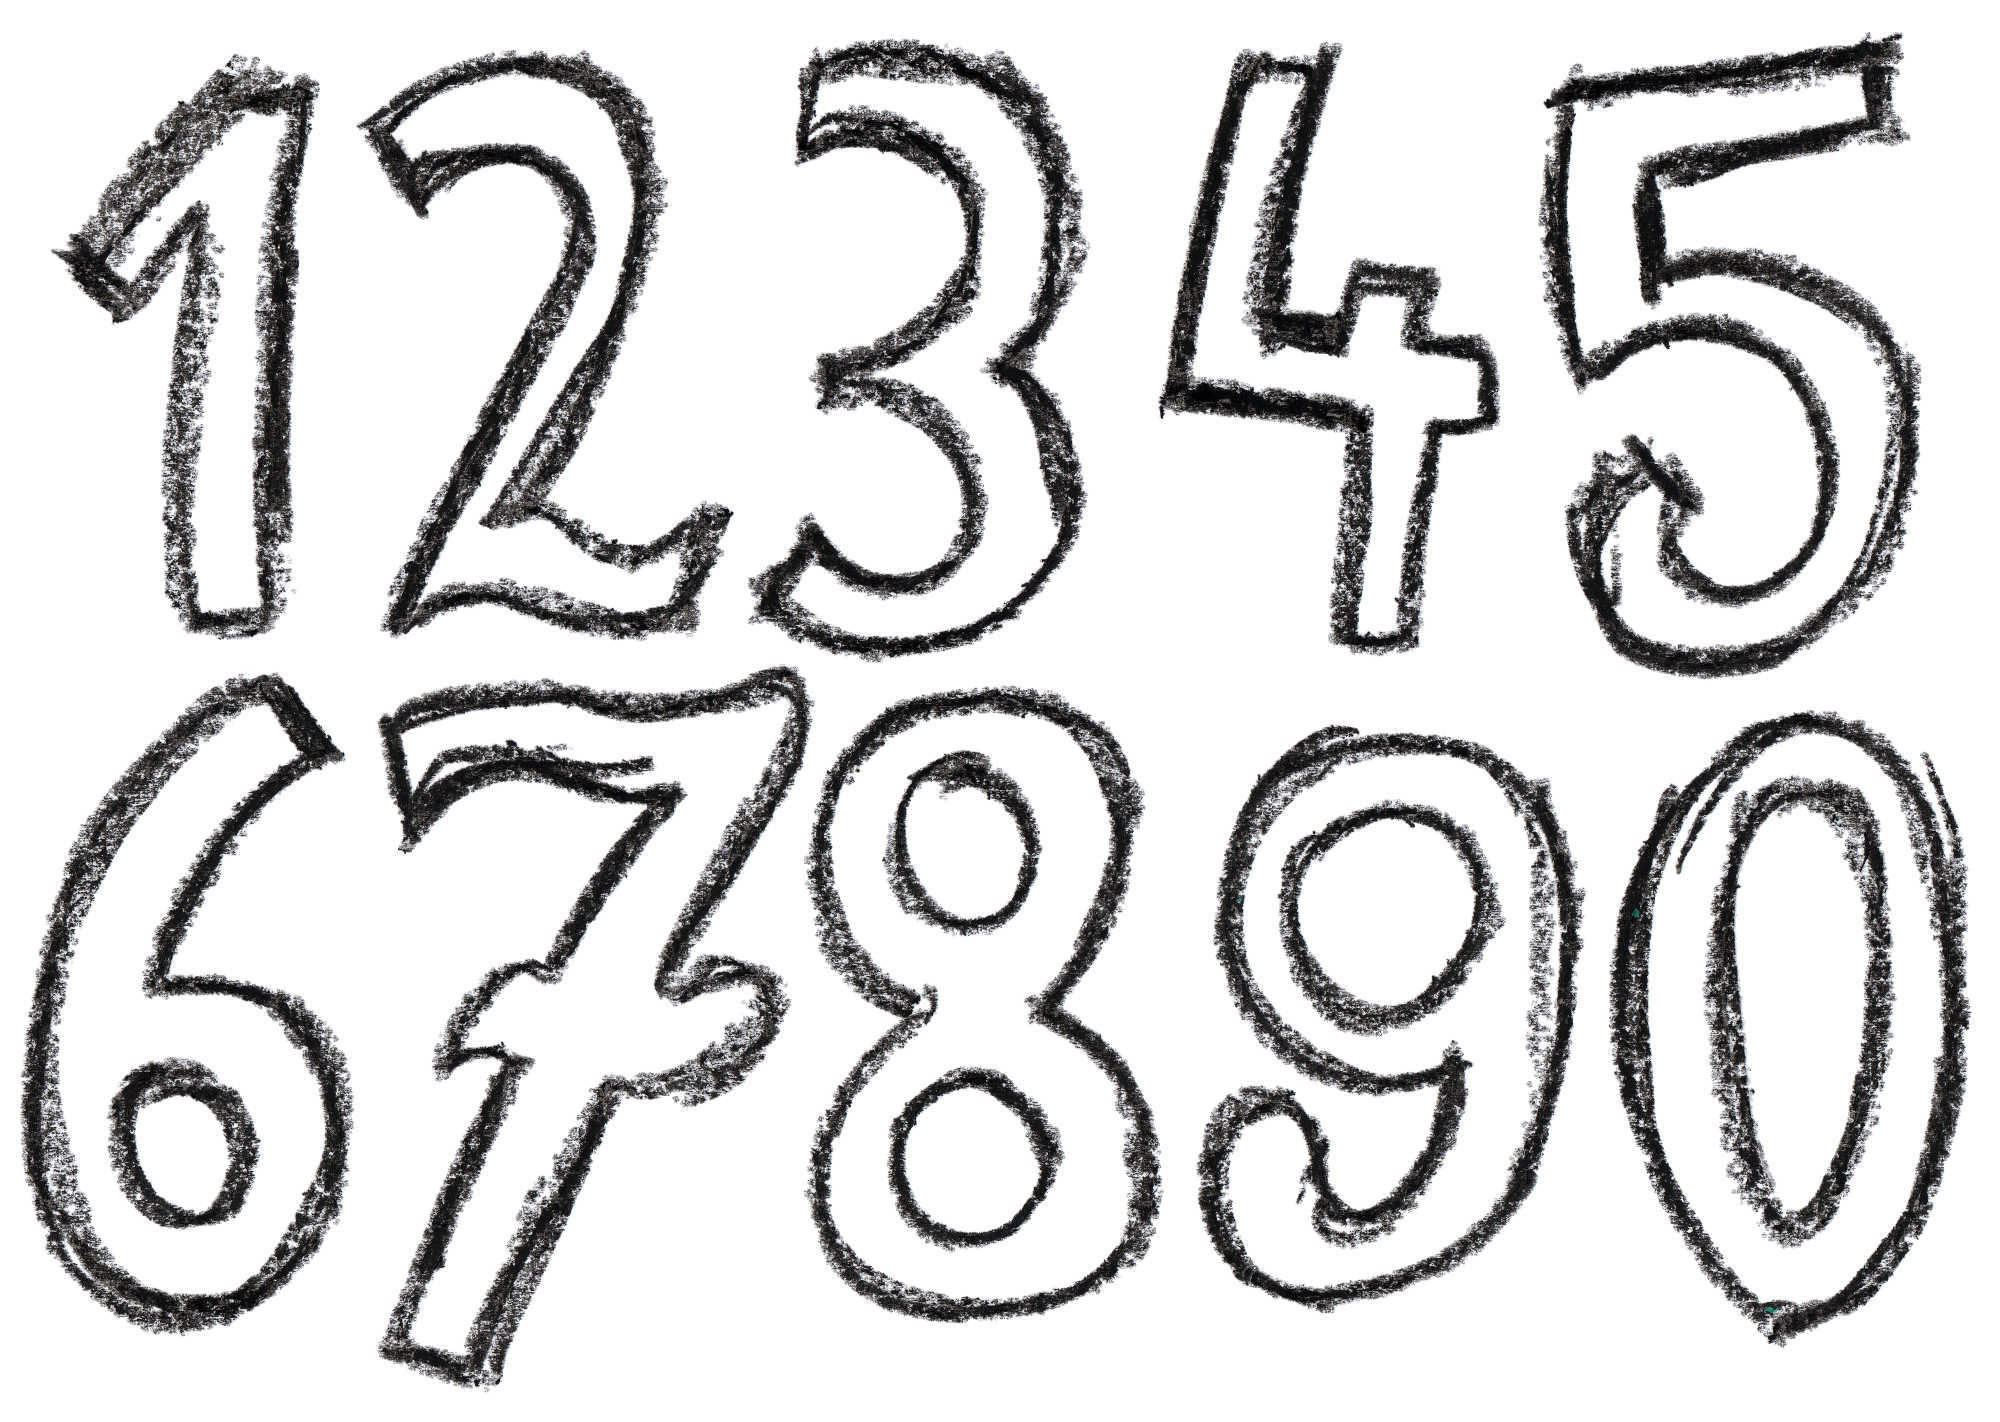 clipart royalty free library Numbers transparent. Crayon number png onlygfx.